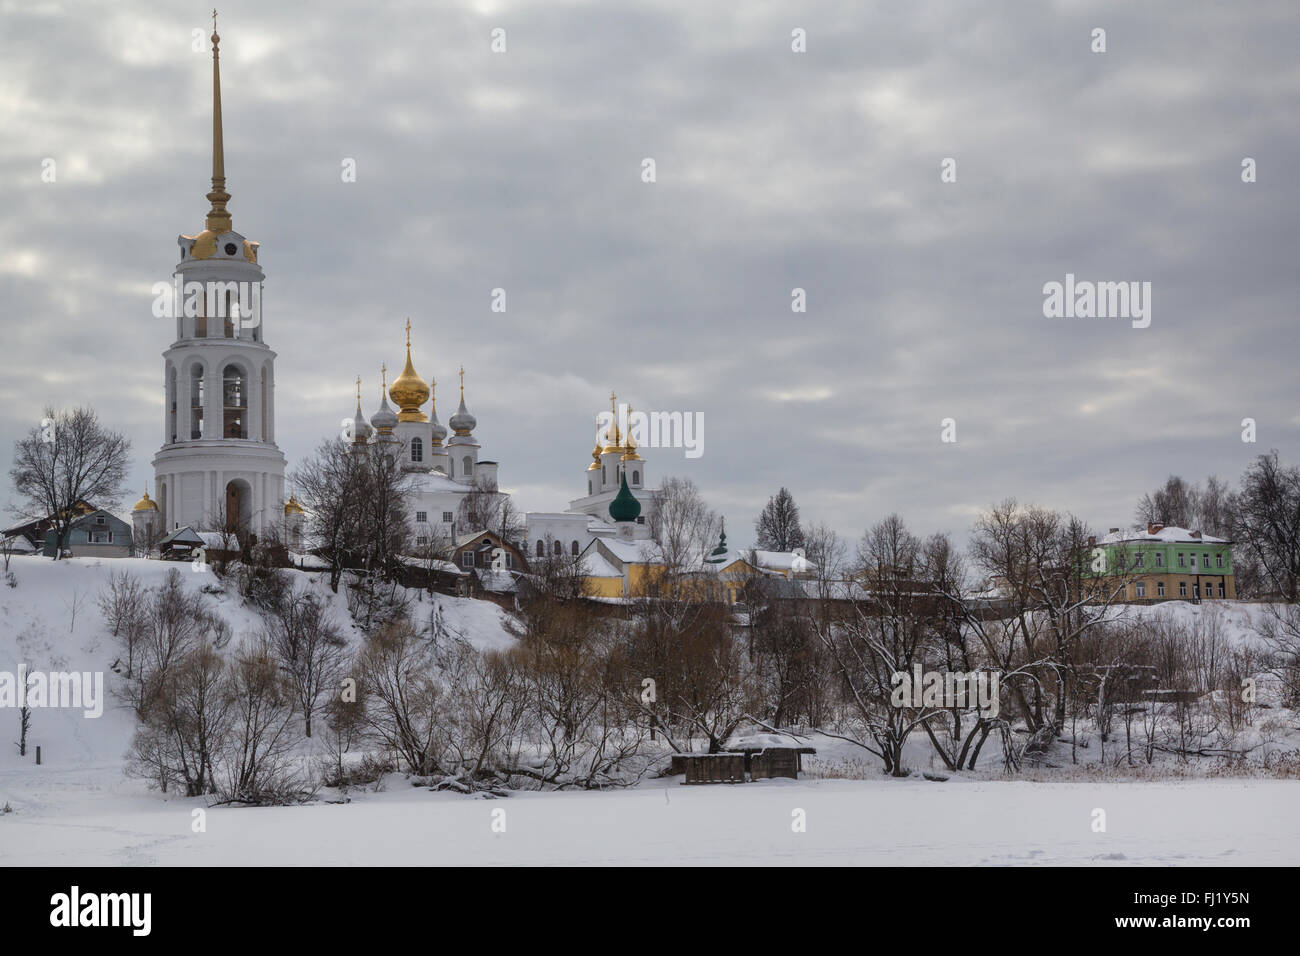 The Assumption Church (Ivanovo) is a lost historical monument